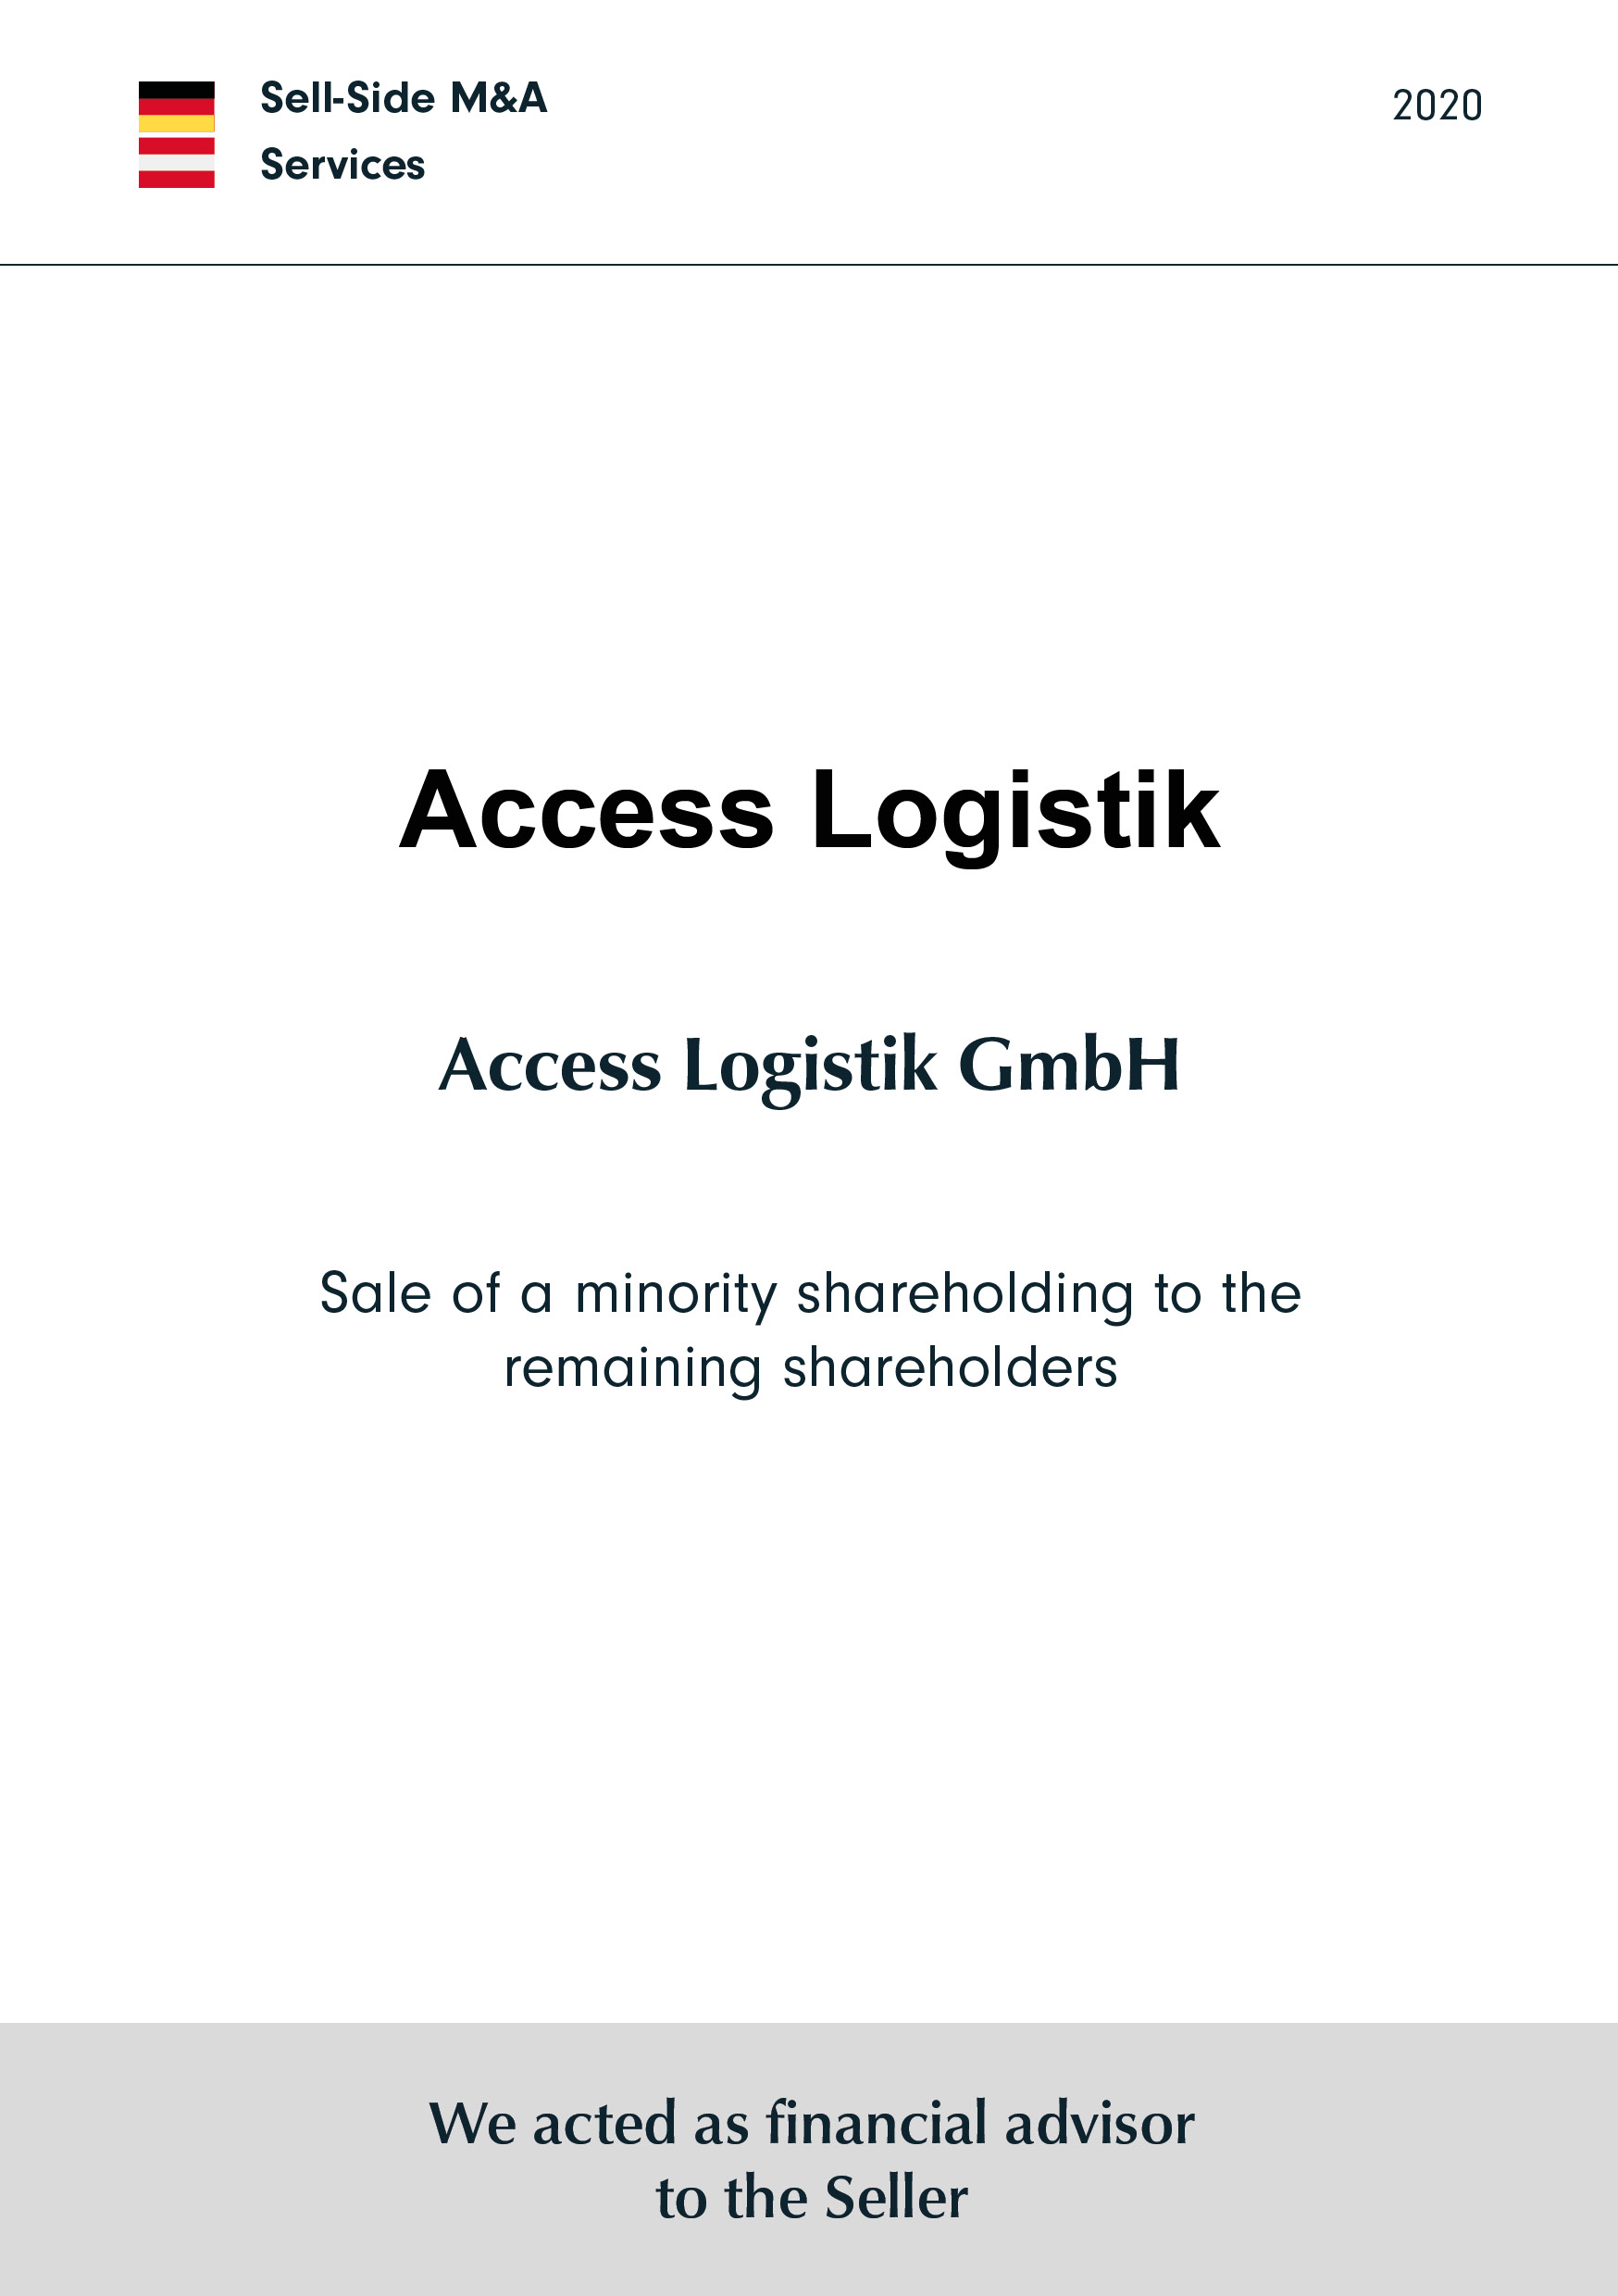 Access Logistik GmbH | Sale of a minority shareholding to the remaining shareholders